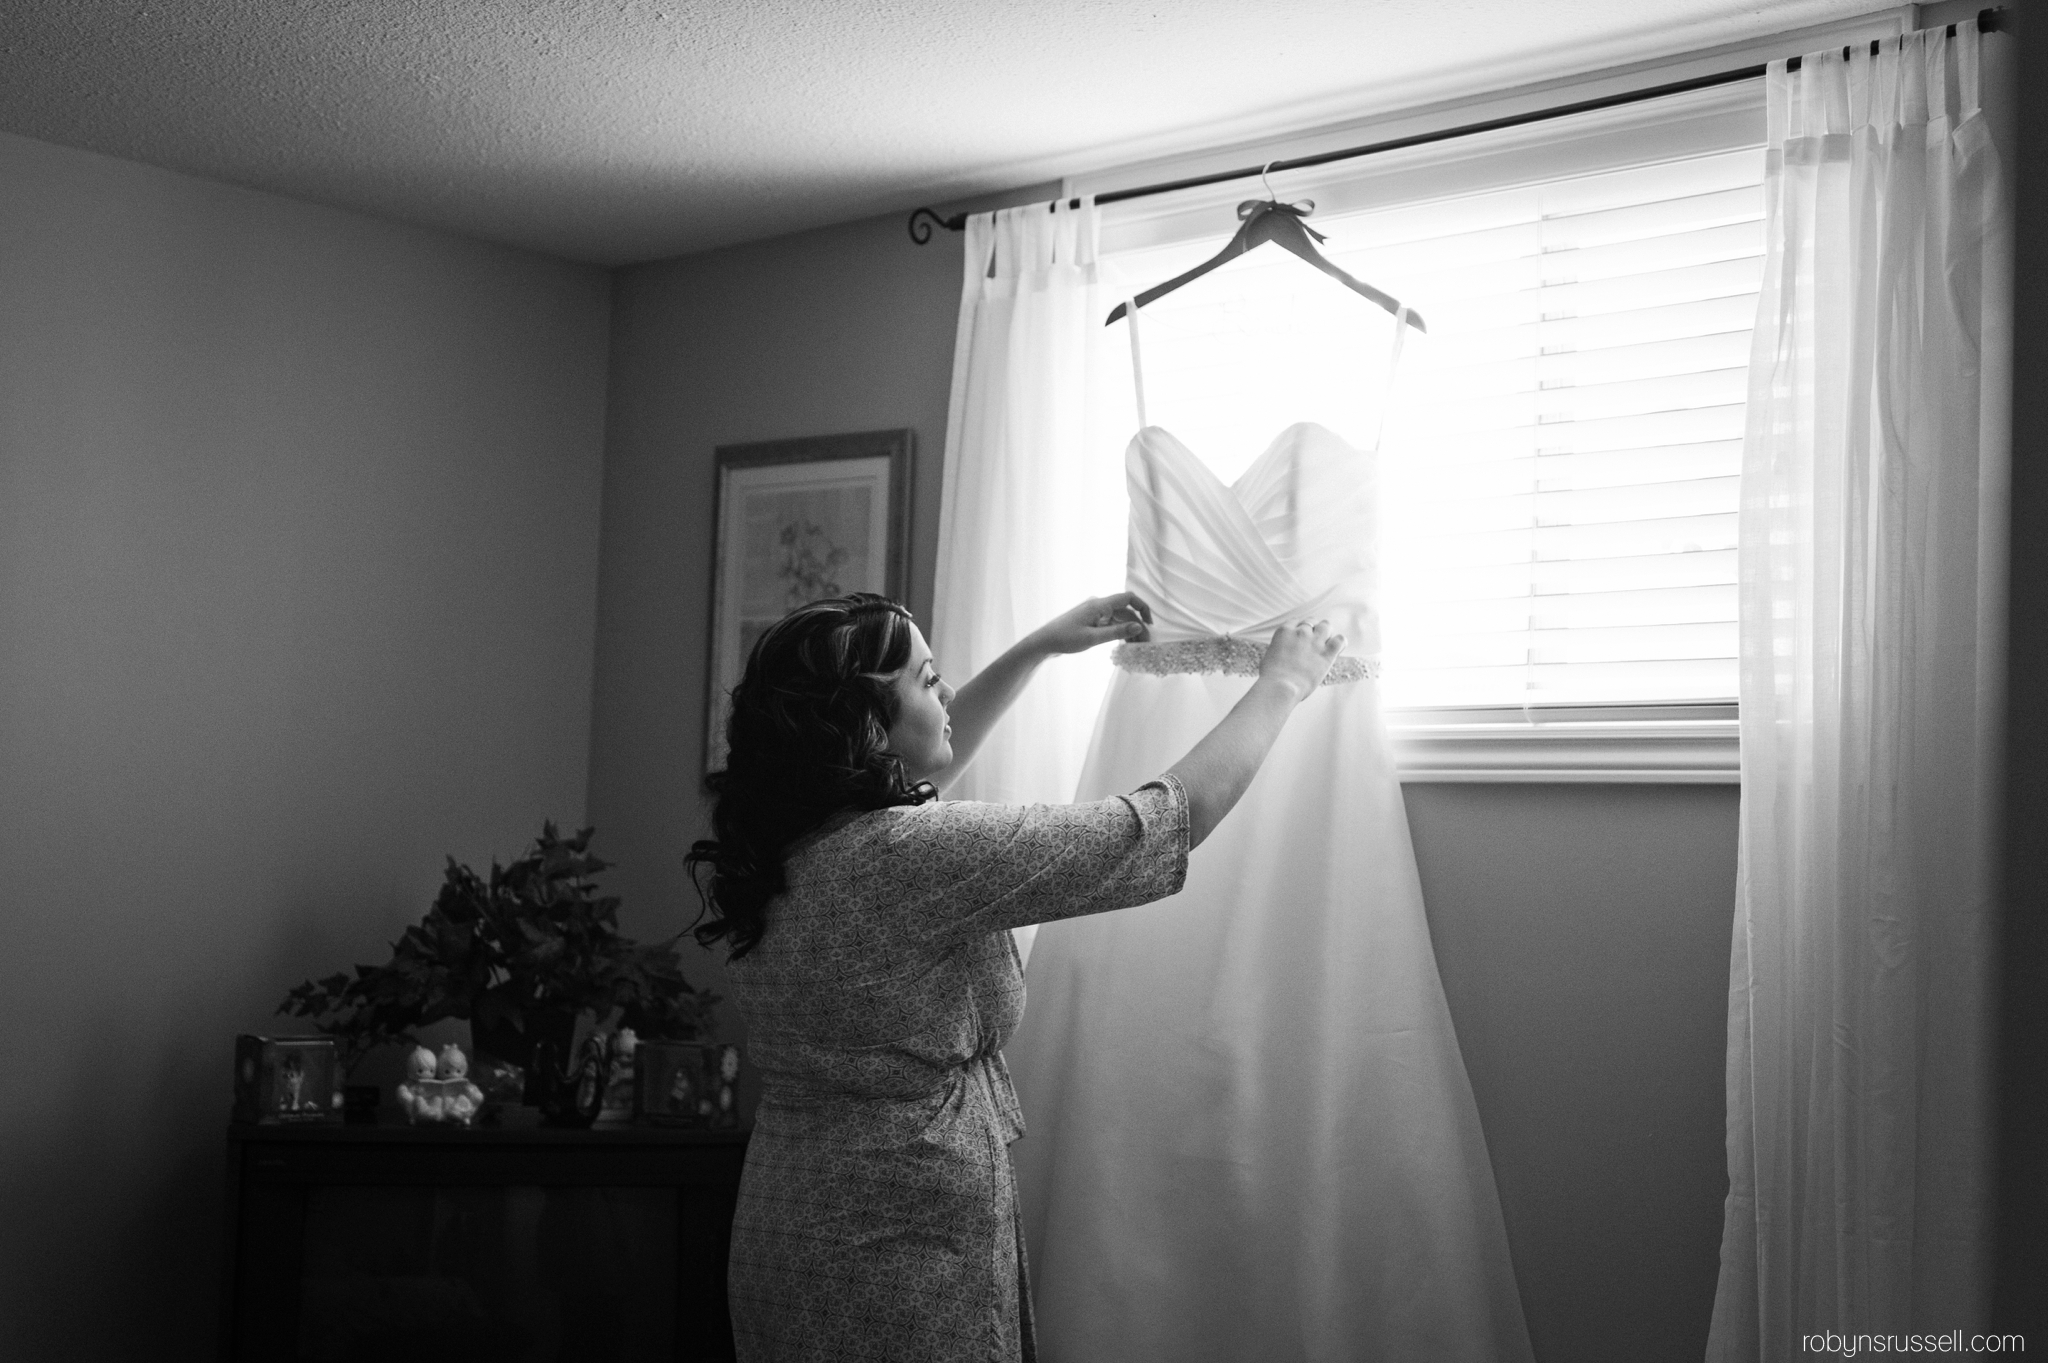 10-bride-grabbing-dress-in-grandmothers-room.jpg